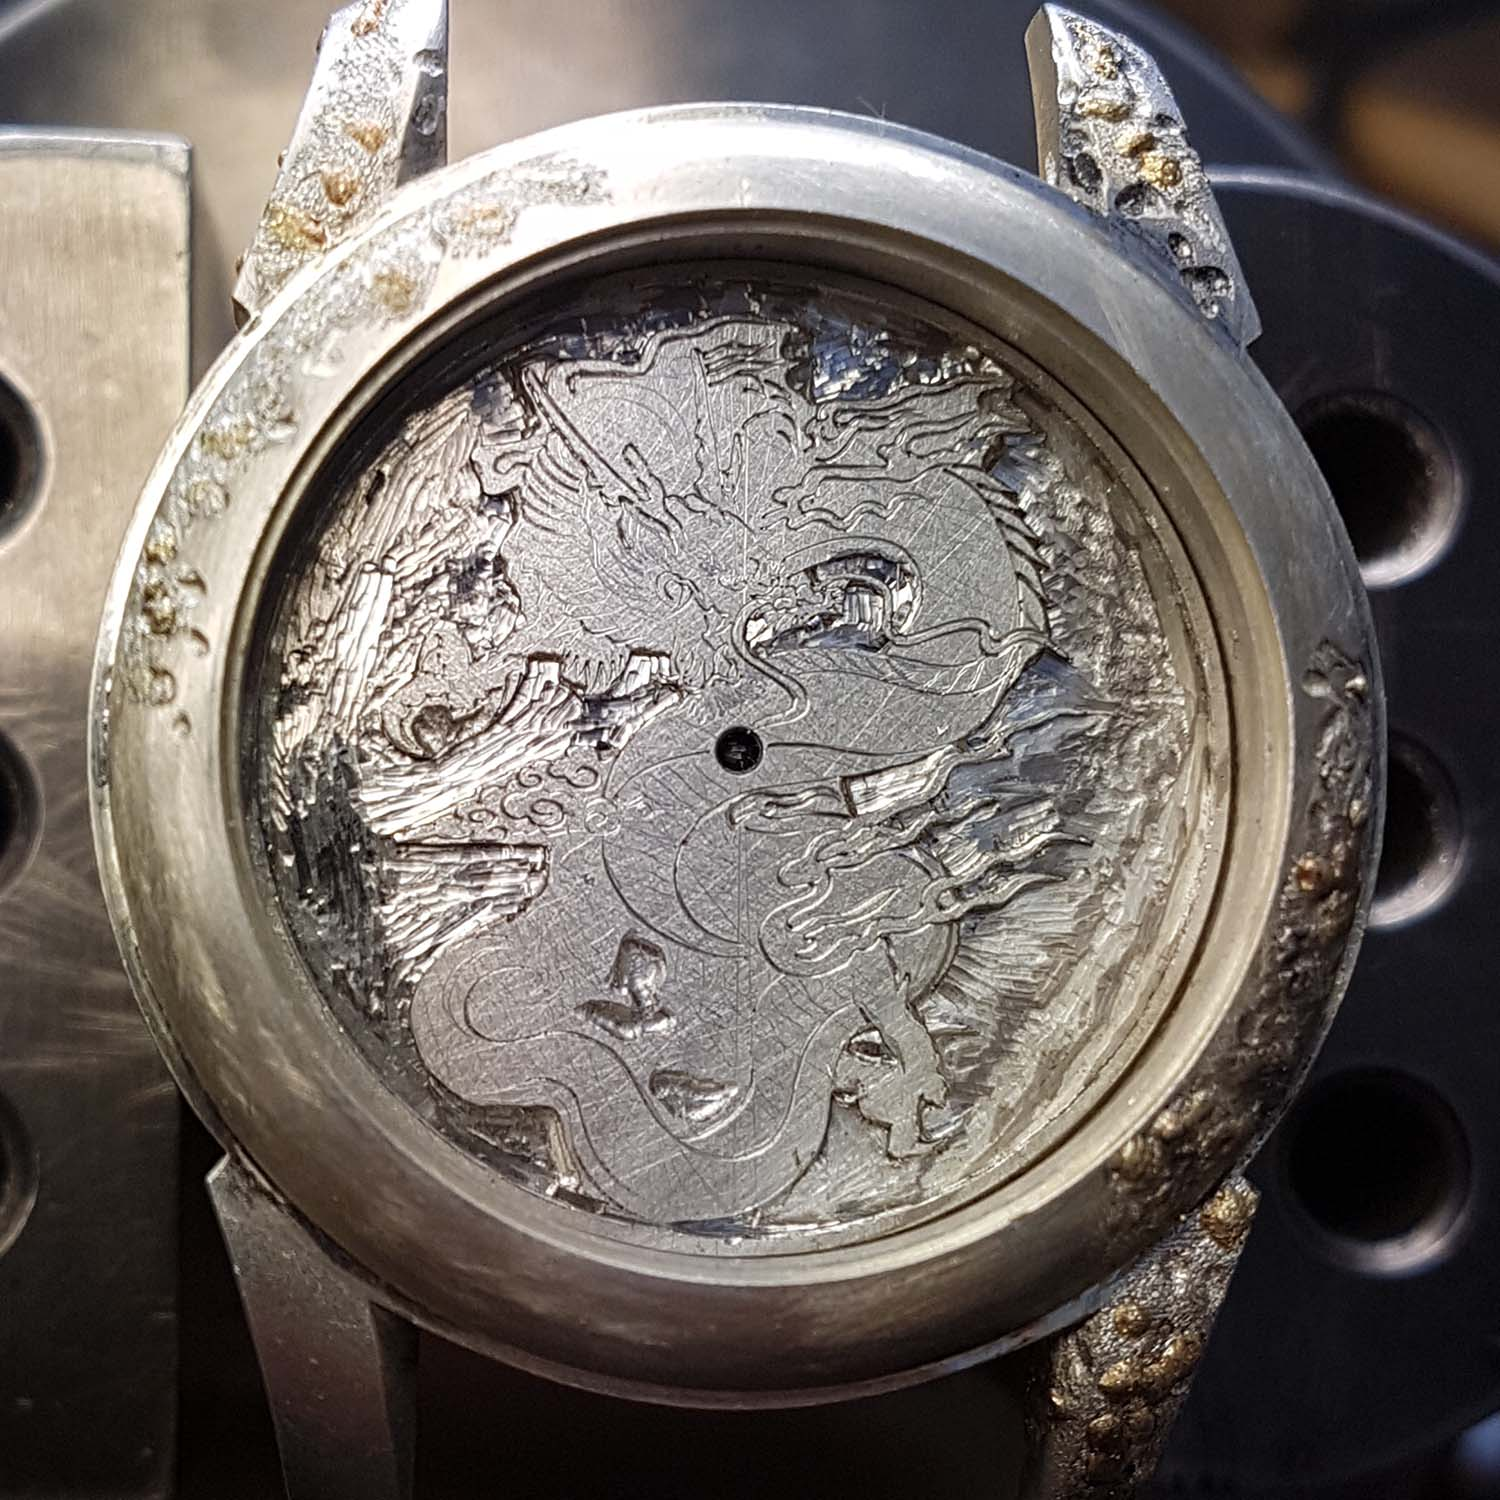 Hand-Engraved Kees Engelbarts Organic Skeleton Ref 1867 - making of - 9